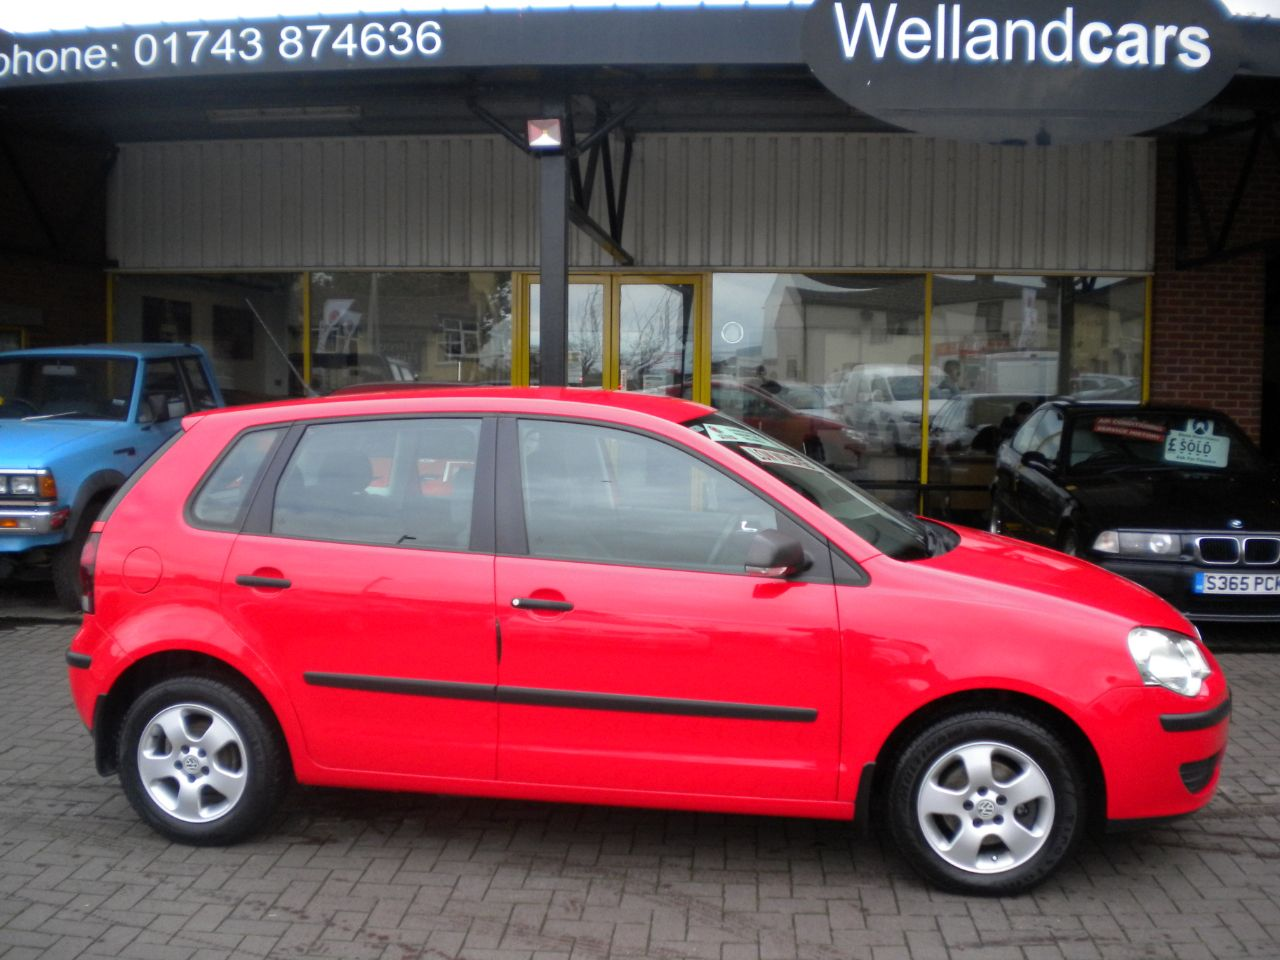 Volkswagen Polo 1.2 E 60 5dr 5 Speed Manual, F/S/H, Low Miles, Alloys,15 MONTH PARTS AND LABOUR WARRANTY INCLUDED Hatchback Petrol Bright Red at Welland Cars Shrewsbury